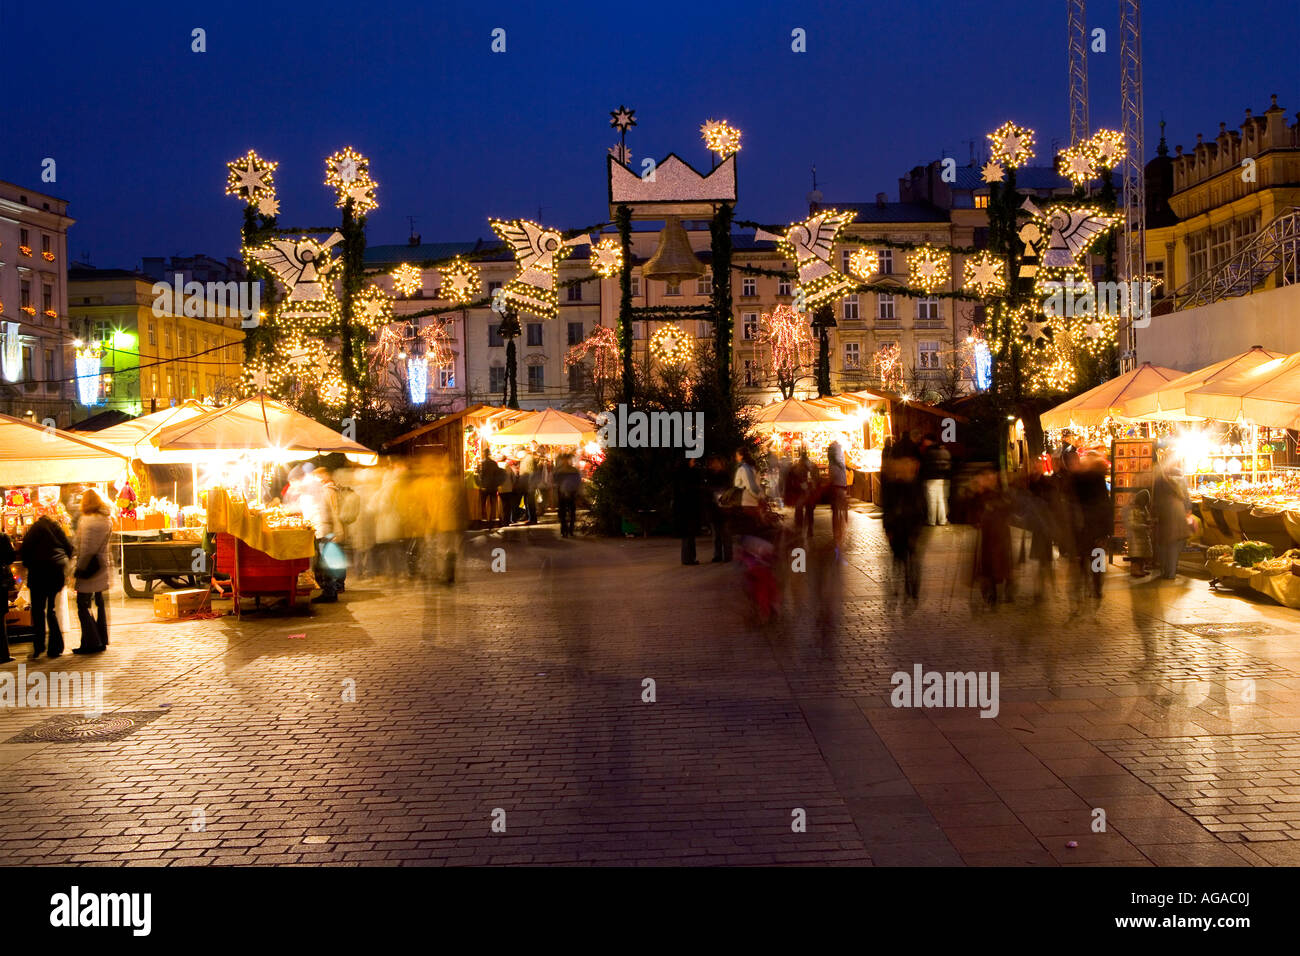 weihnachten weihnachtsmarkt in krakau krakau polen stockfoto bild 14147393 alamy. Black Bedroom Furniture Sets. Home Design Ideas